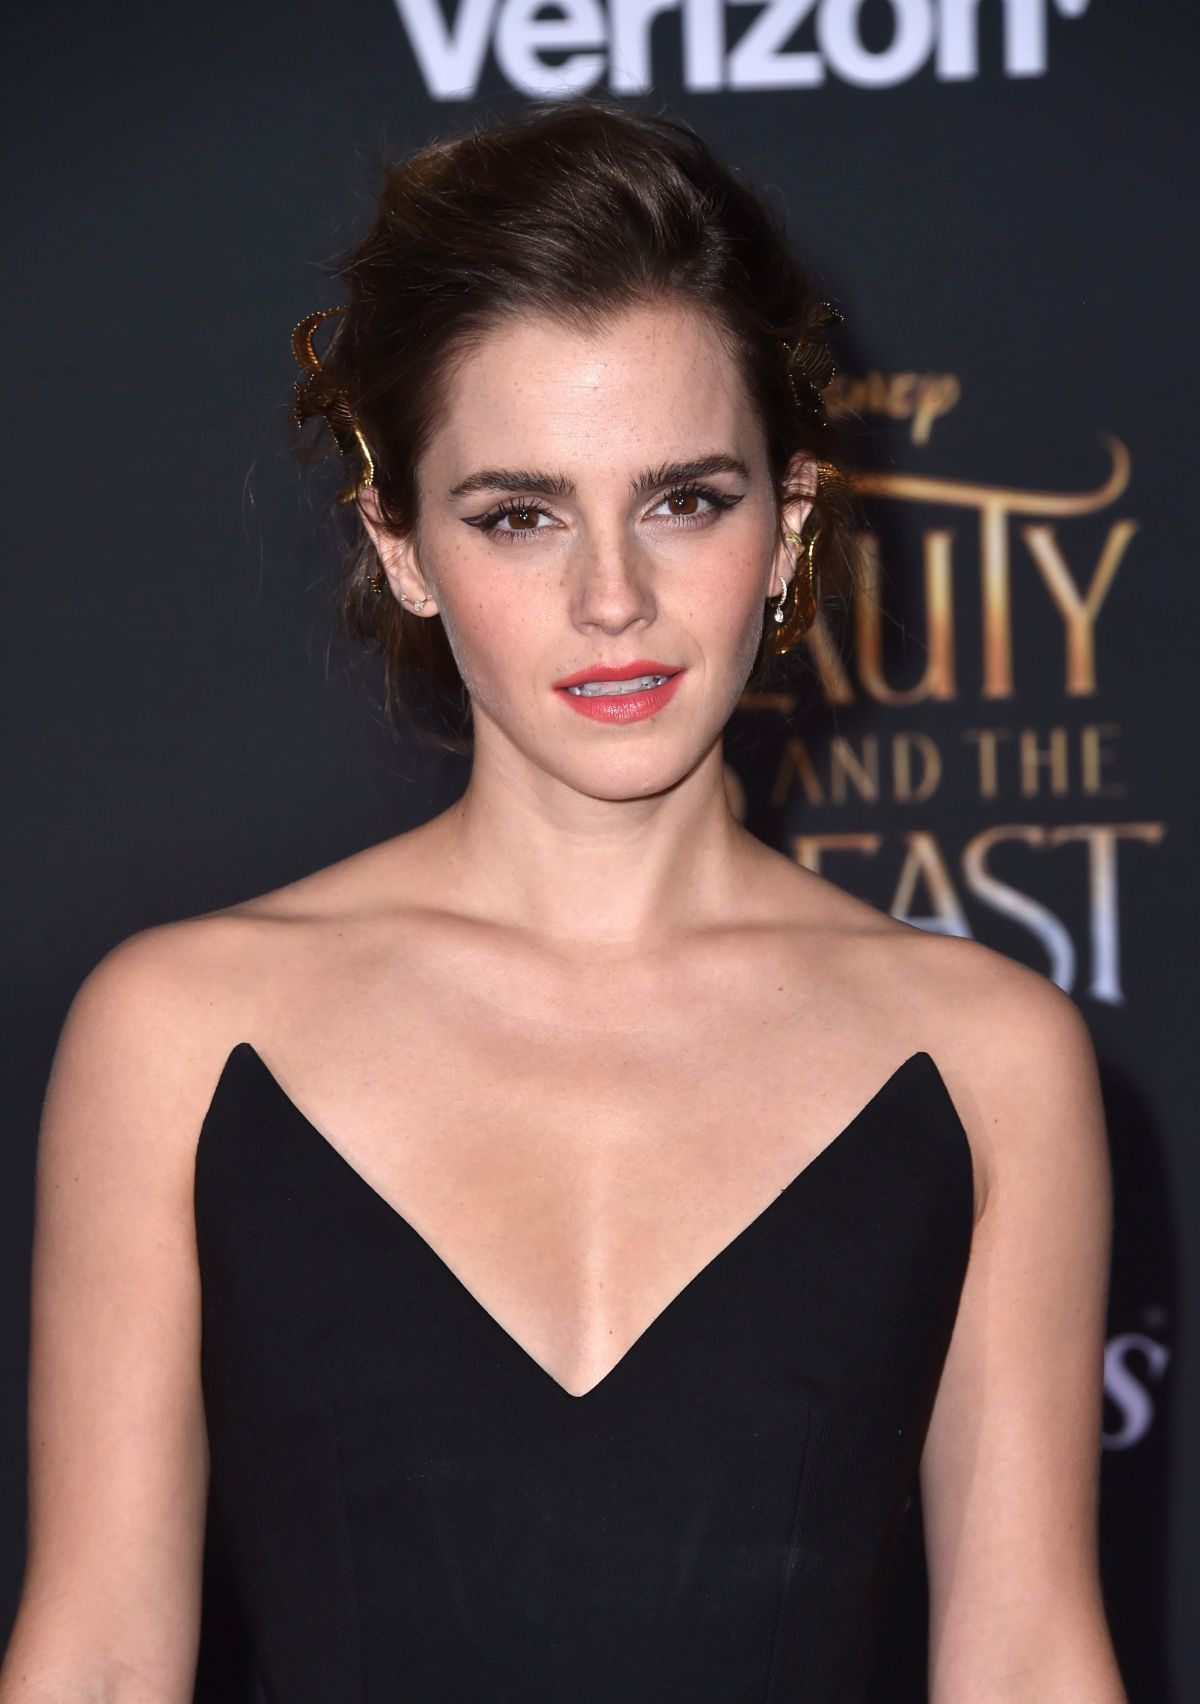 emma watson net worth | how rich is emma watson? - alux